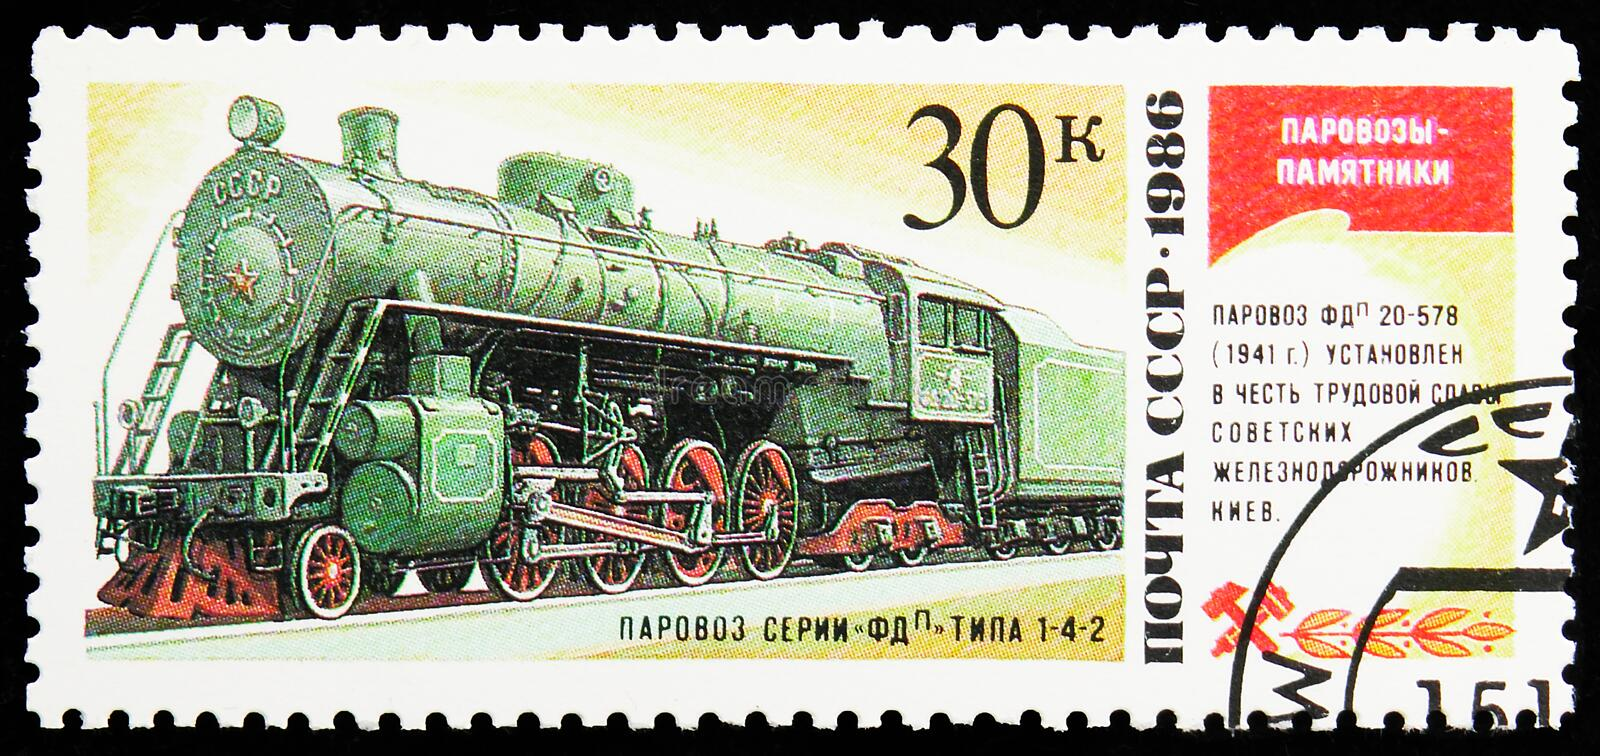 Steam locomotive FD p 20-578, Kiev, Steam Locomotives - Monuments serie, circa 1986. MOSCOW, RUSSIA - AUGUST 31, 2019: Postage stamp printed in Soviet Union ( royalty free stock photography